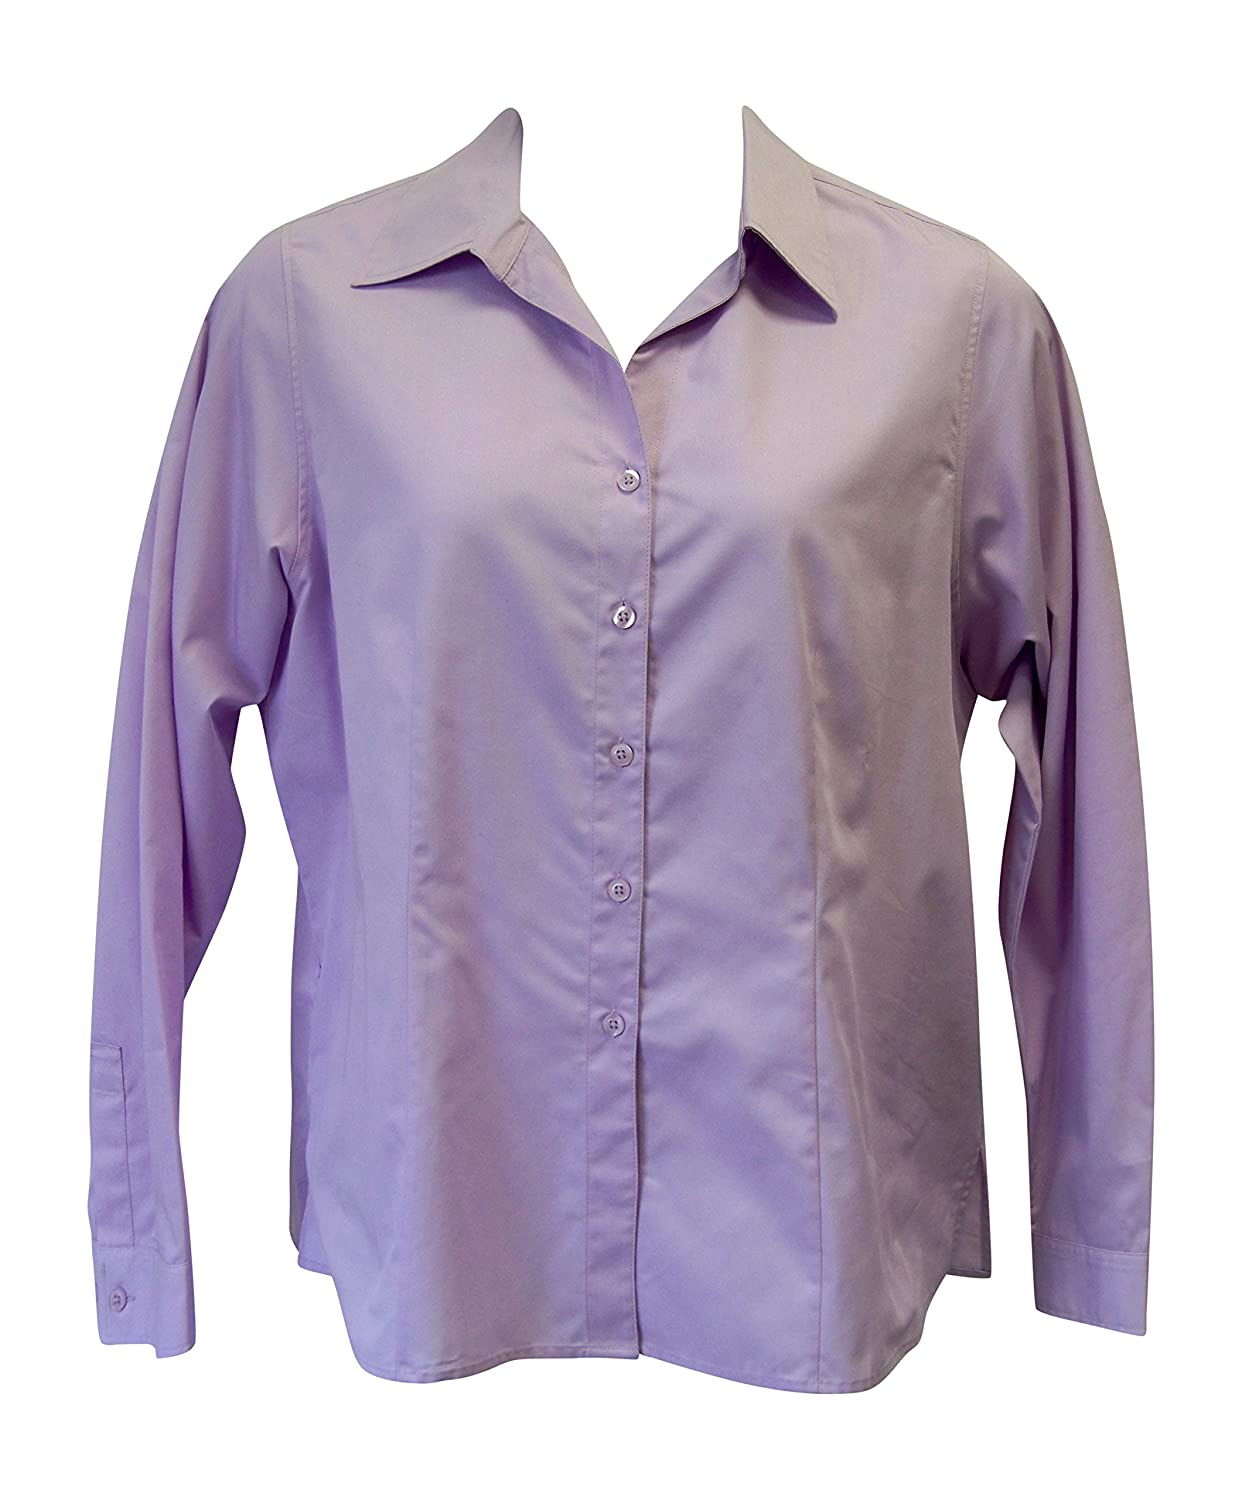 f0213a92e9fd21 Copper Canyon Women's Long Sleeve Solid Blouse Plus Size (1X, Lavender) at  Amazon Women's Clothing store: